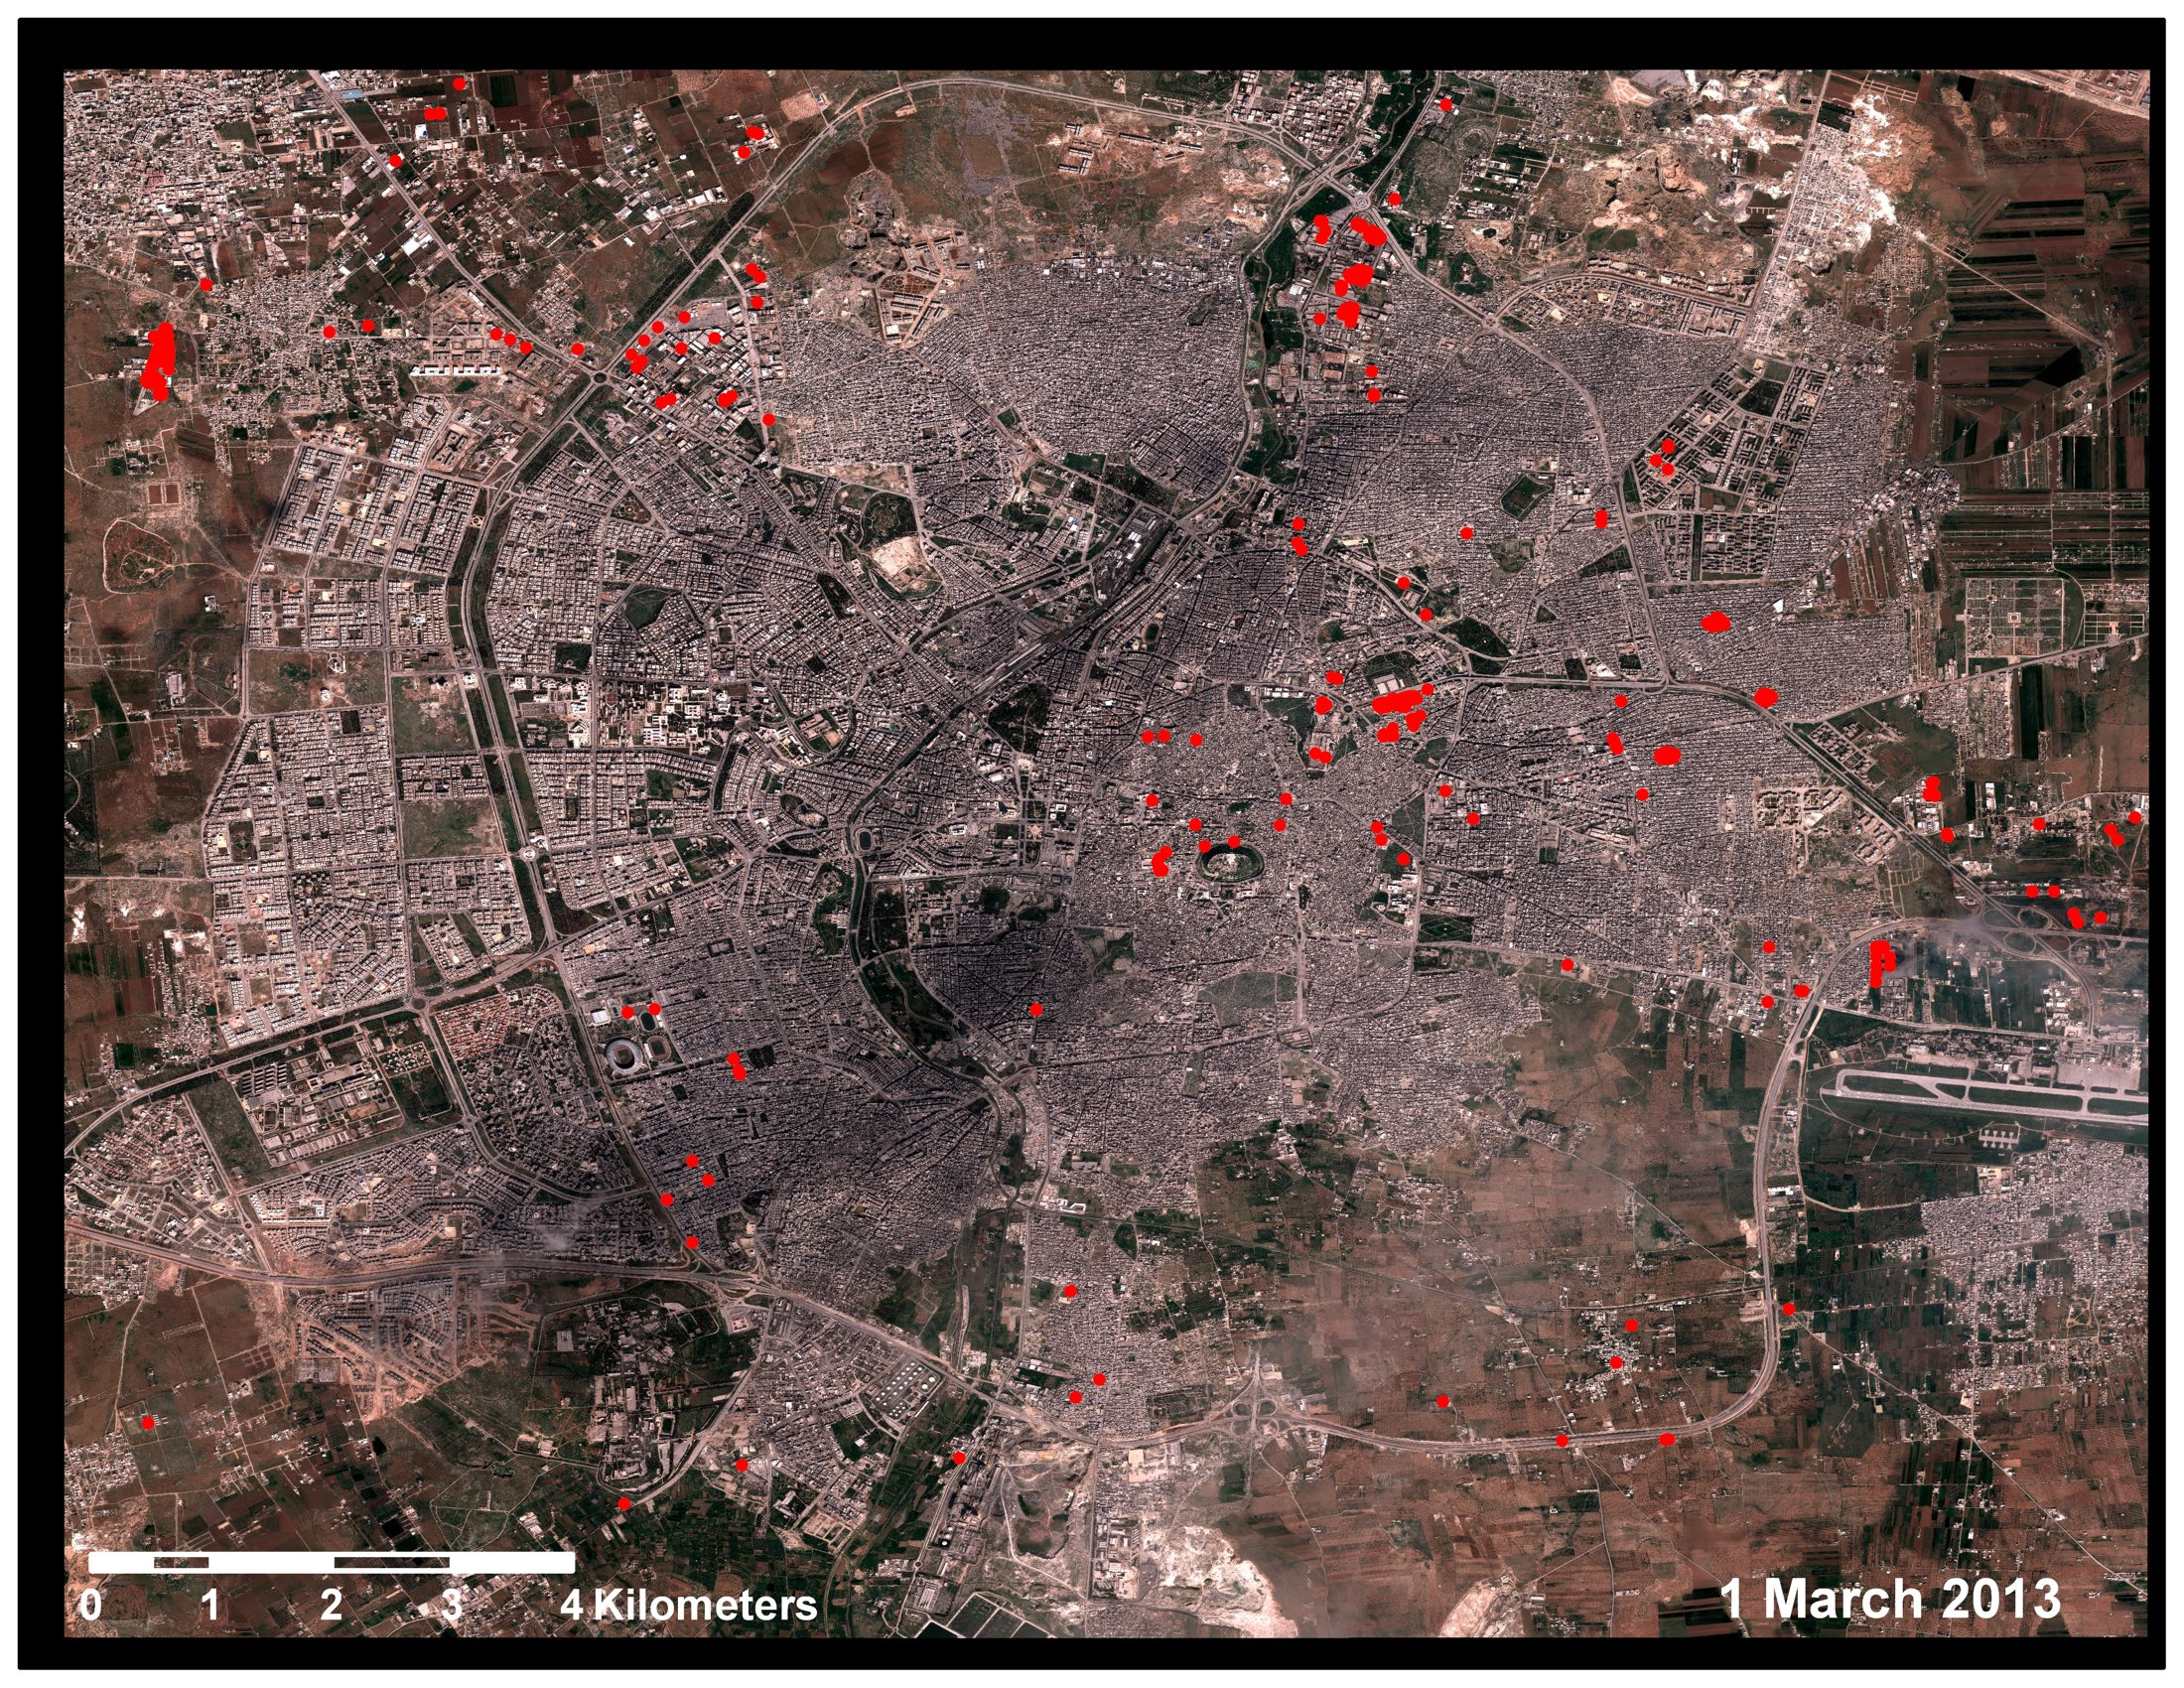 Syria Map And Satellite Image: Aleppo Satellite Images Reveal Destruction Wrought By